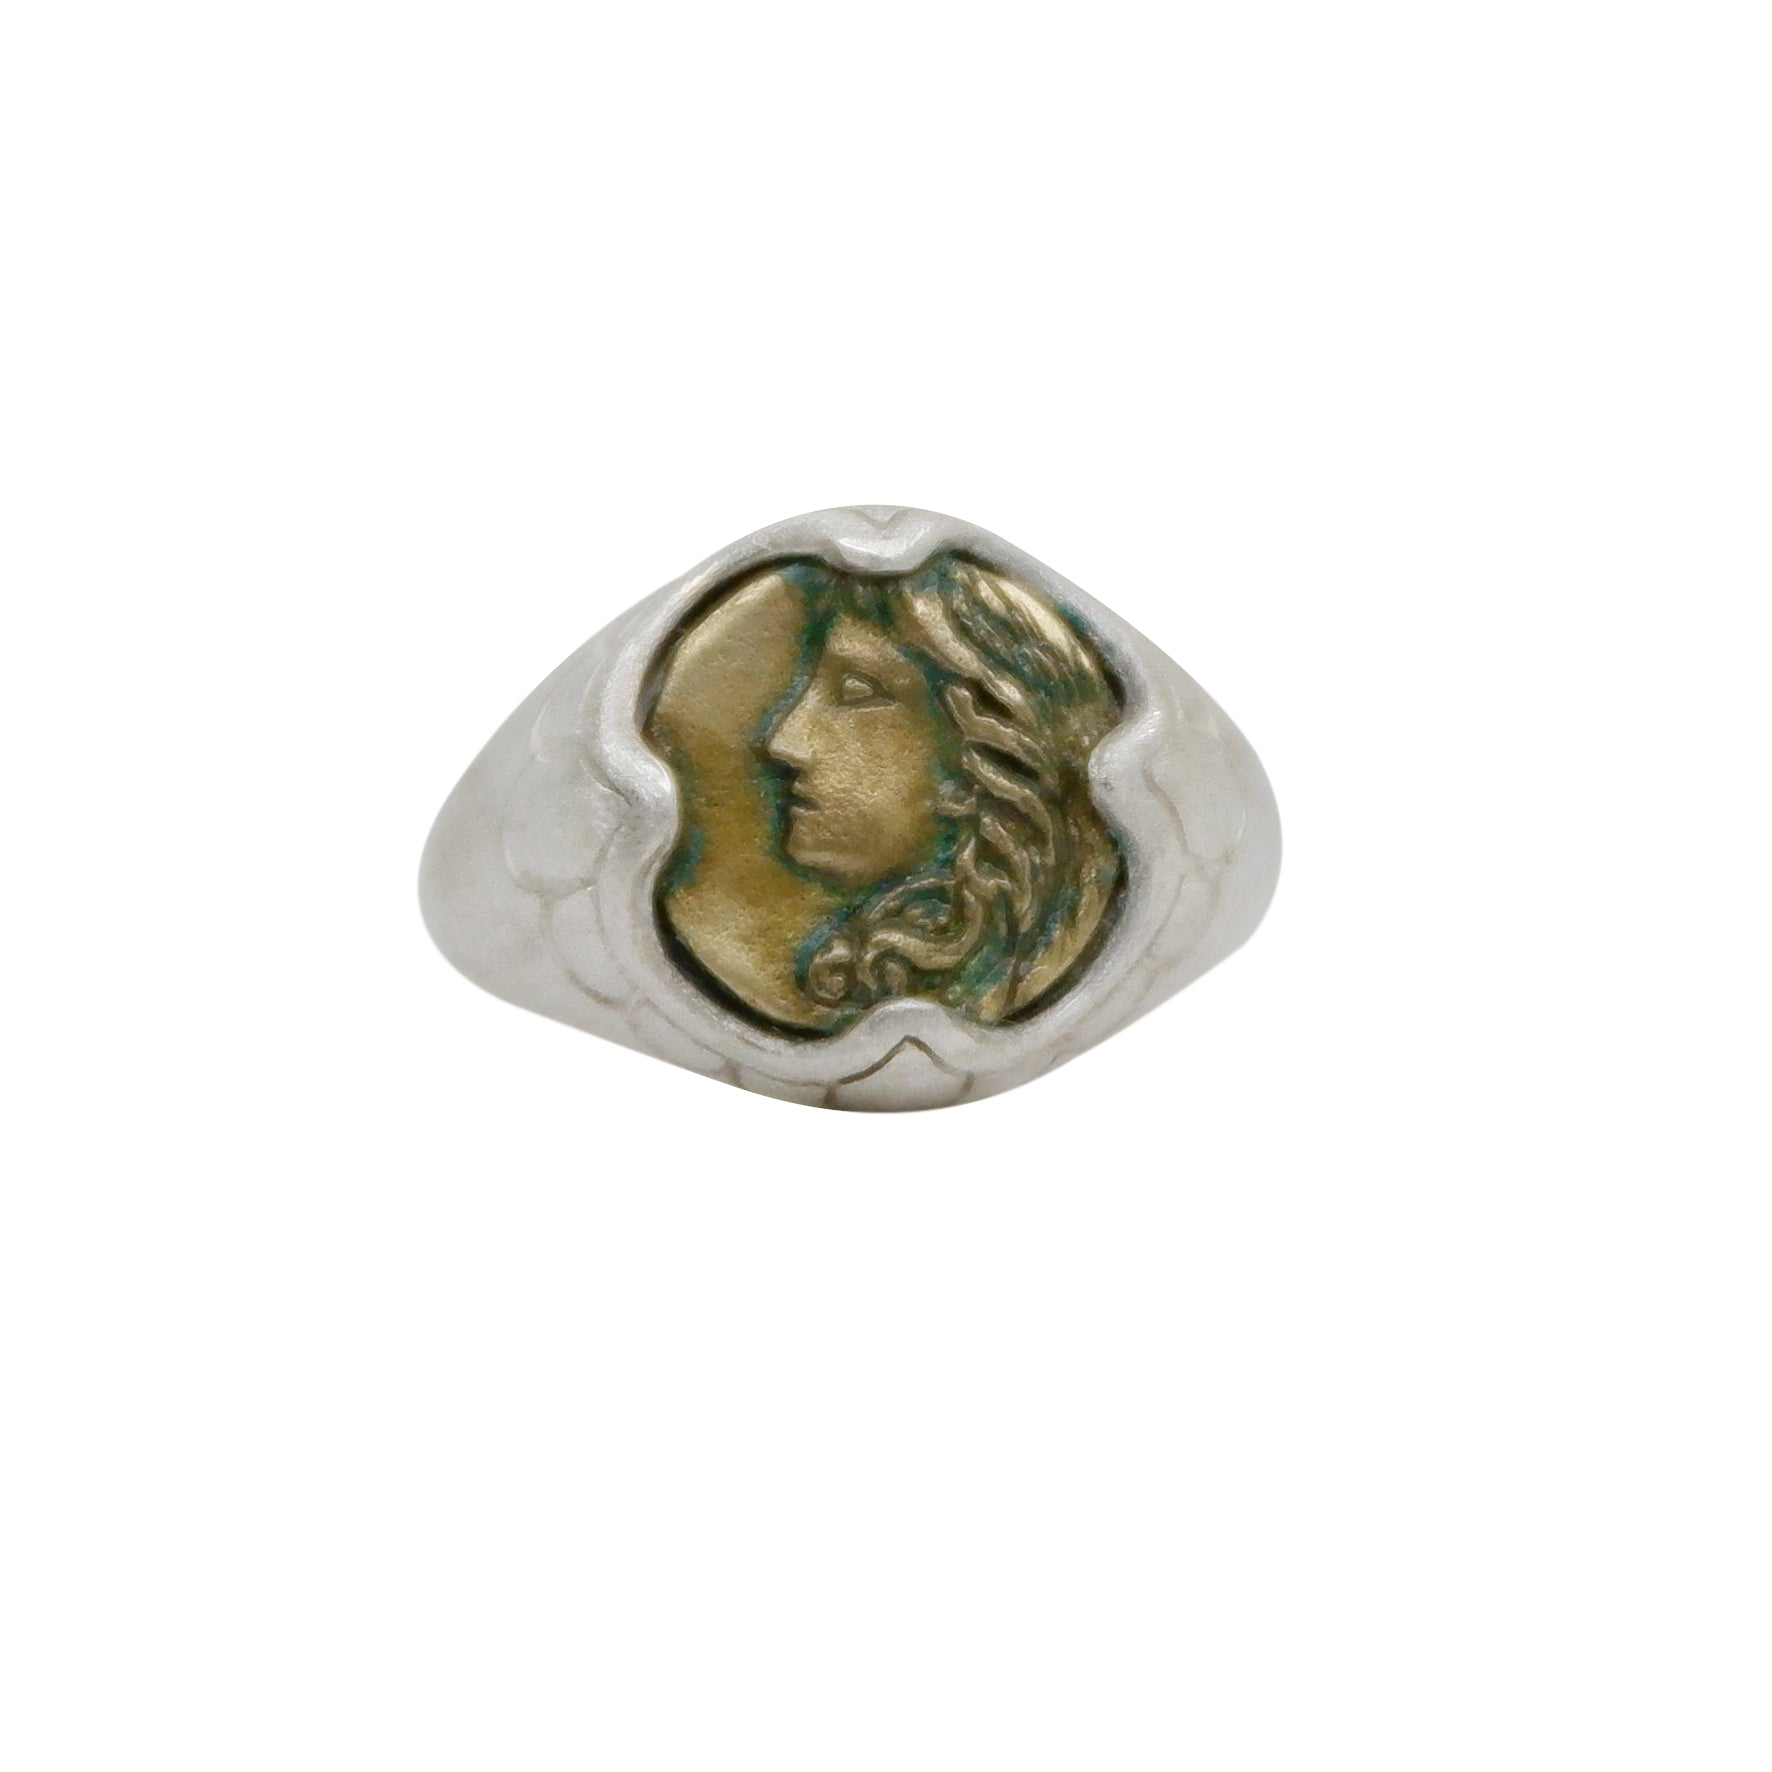 Hunt Of Hounds Hera Ring. Ancient coin ring with goddess engraving. Oxidized brass coin. Inspired by found treasure.